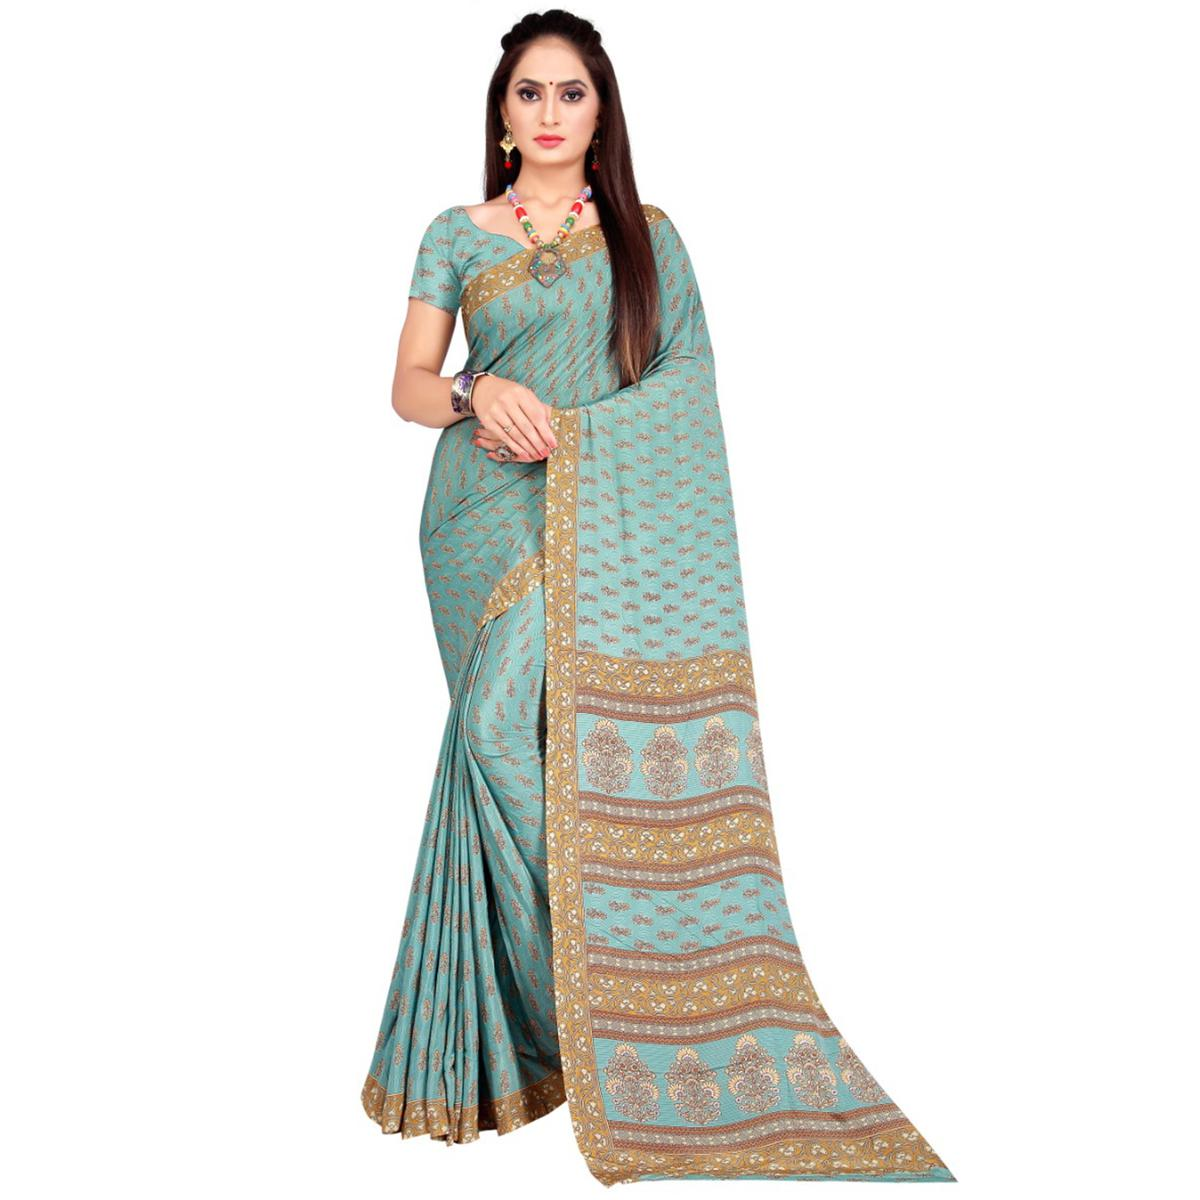 Entrancing Sky Blue Coloured Casual Wear Printed French Crepe Silk Saree